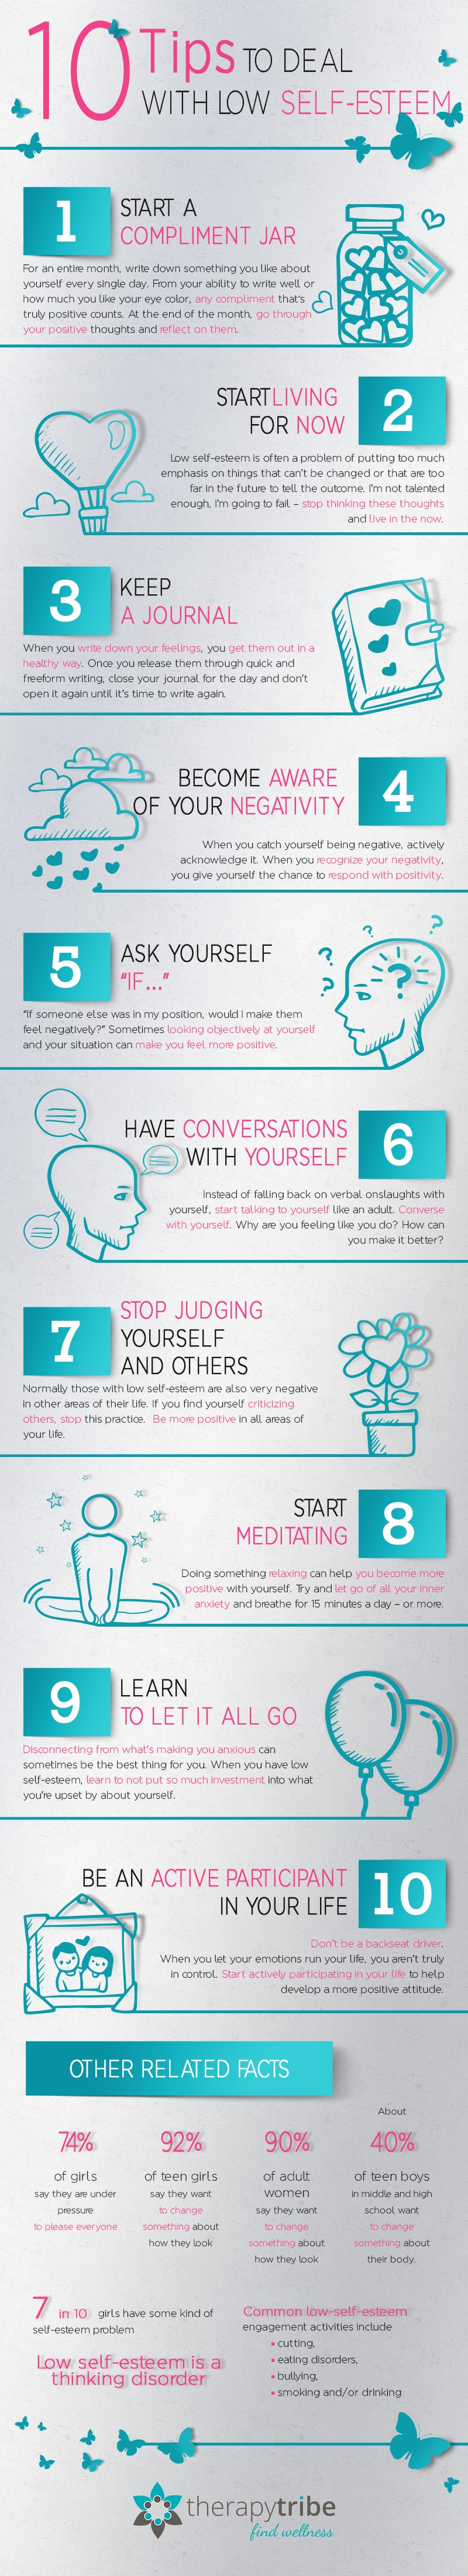 How to Defeat Low Self Esteem: 10 Ways Forward - Infographic